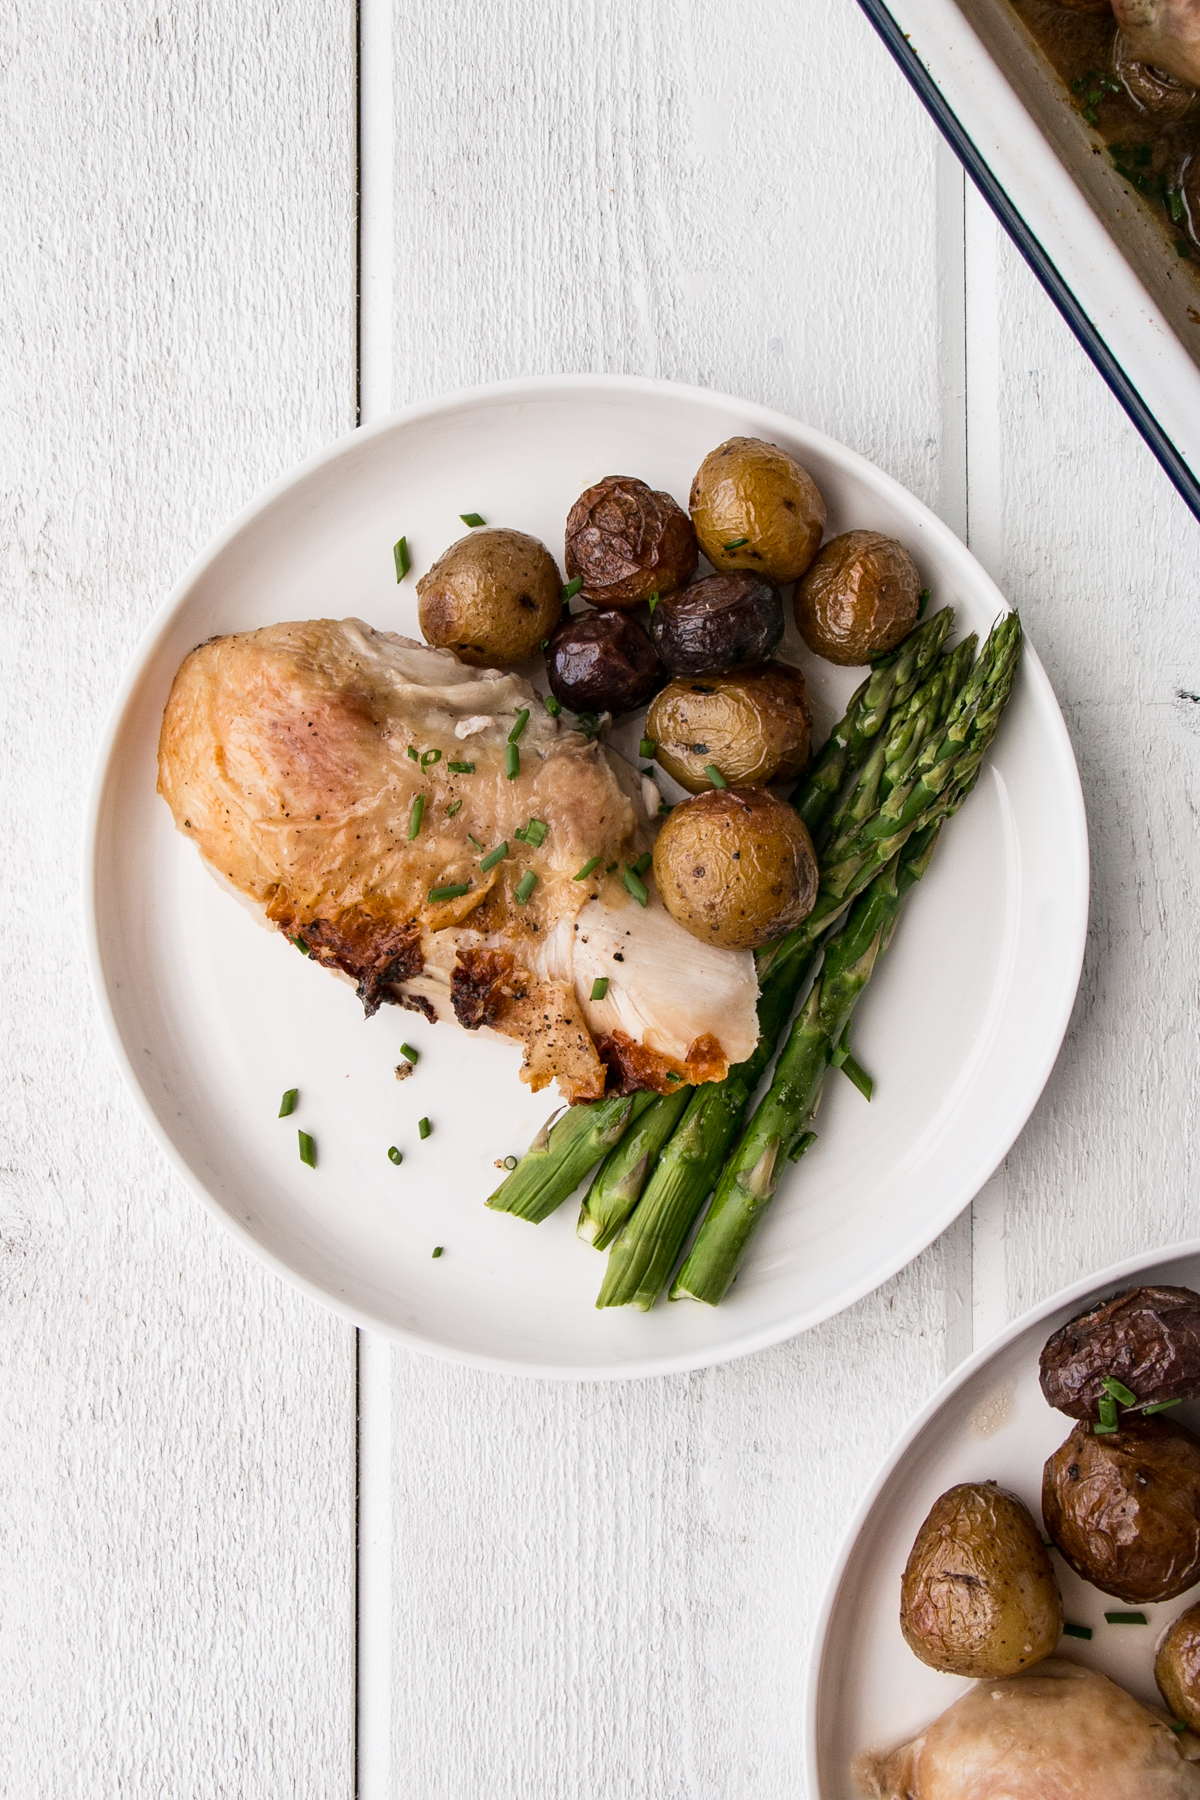 a piece of chicken breast with potatoes and asparagus on a white plate.